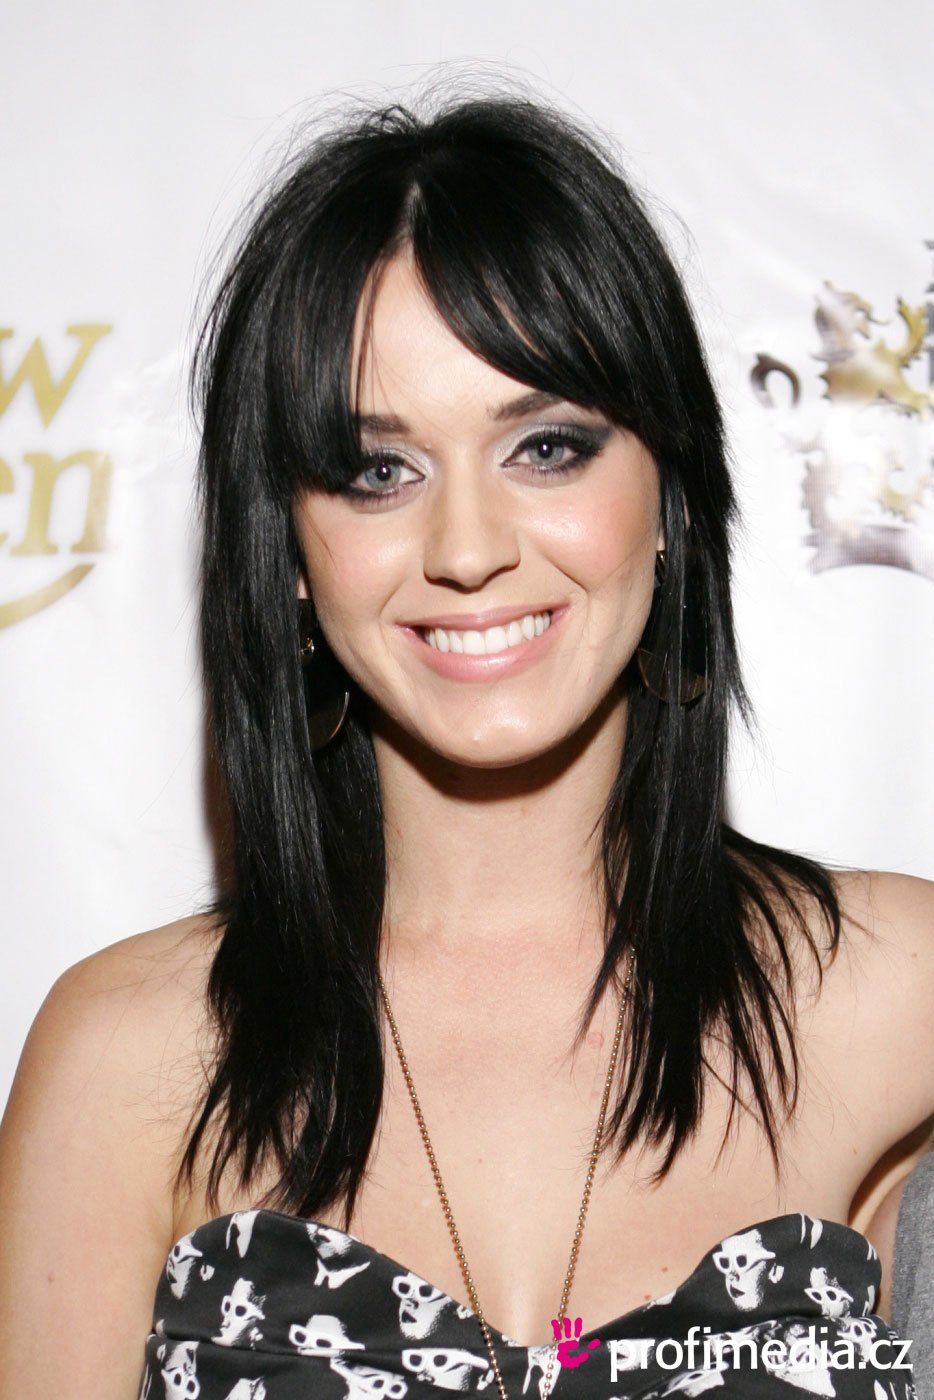 Free 30 S*Xy Katy Perry Hairstyles Slodive Wallpaper